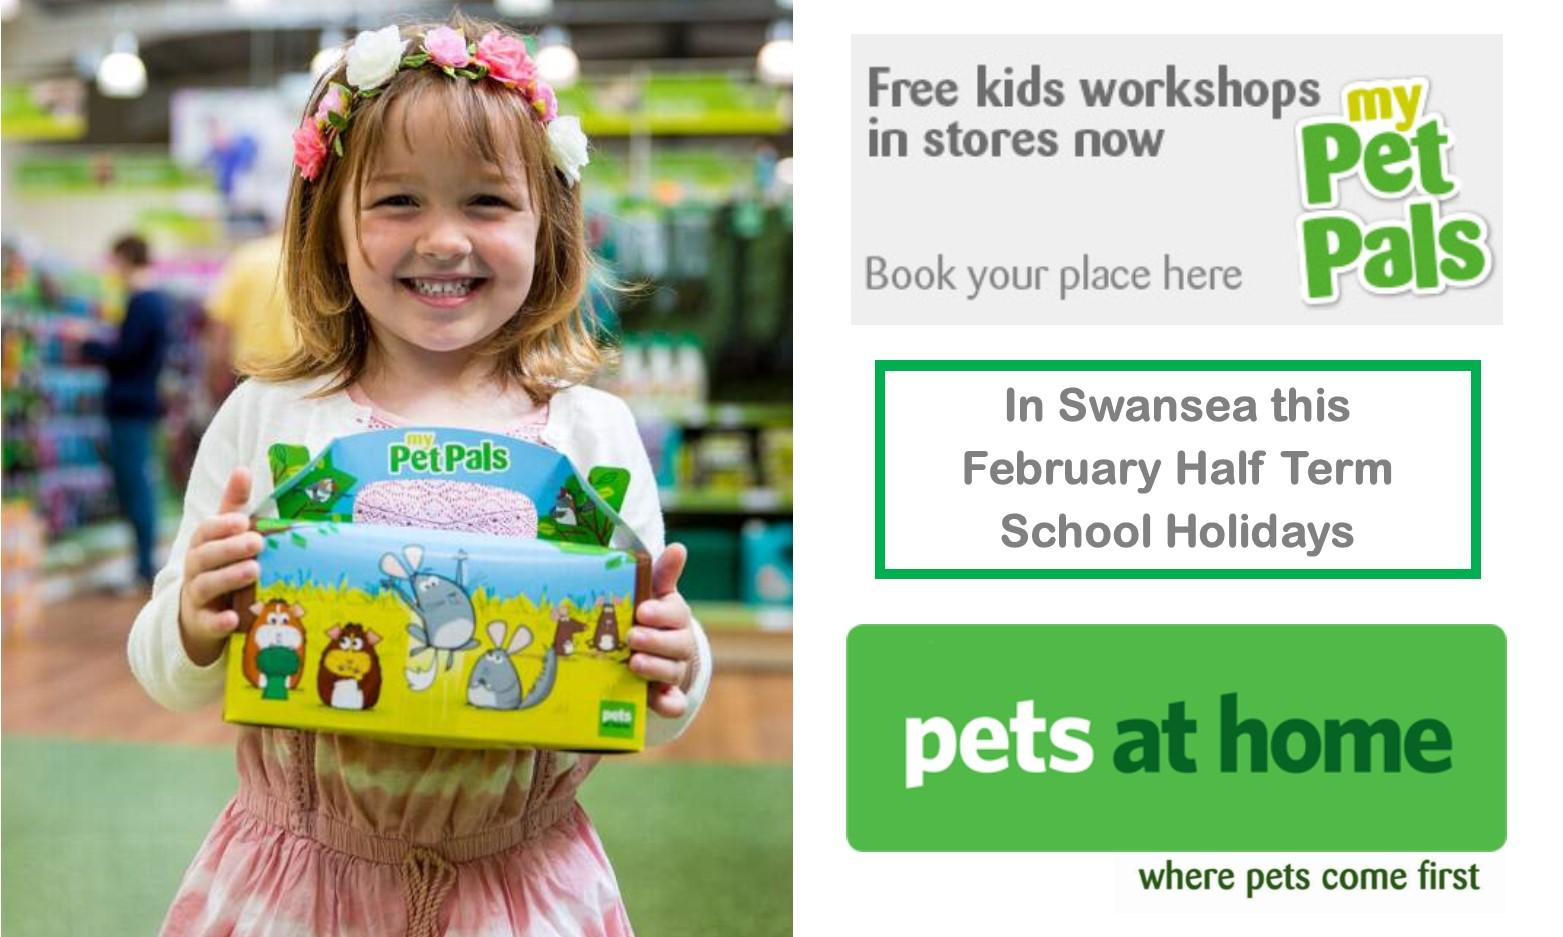 Super Small Furries Pets at Home Workshop in Swansea